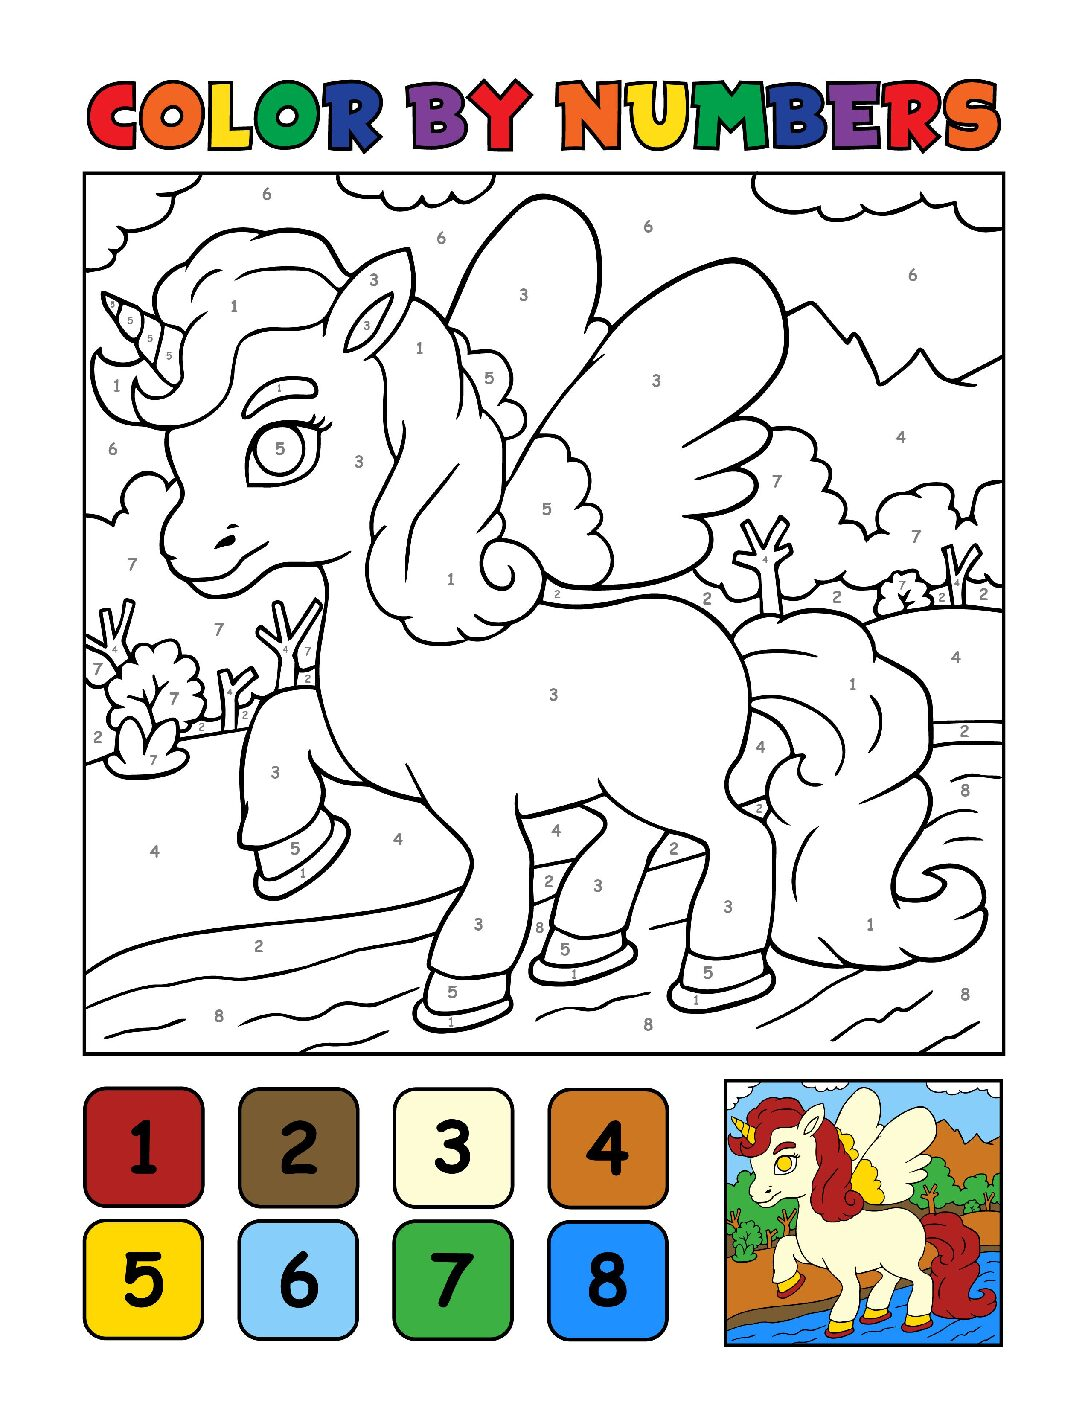 Color-by-Numbers-Kids_Unicorns-16-01-pdf Free Printable Unicorn Colouring Pages